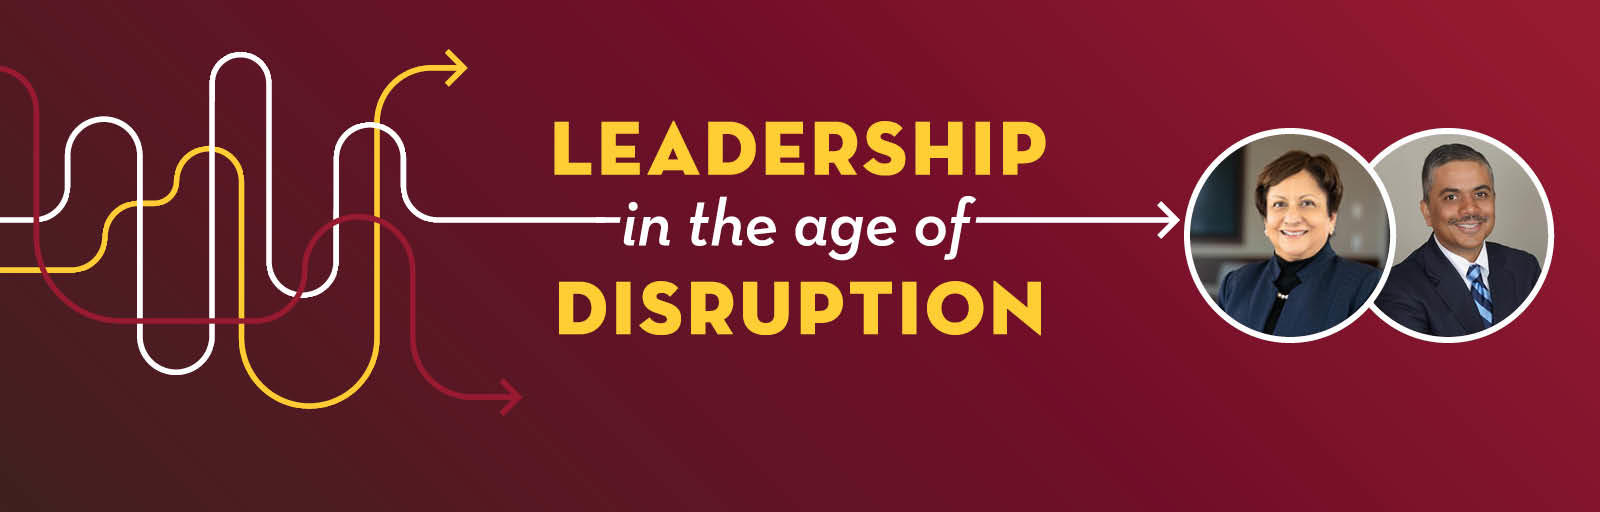 Dealing With Economic Consequences Of Disruption And Identifying Golden Opportunities Carlson School Of Management